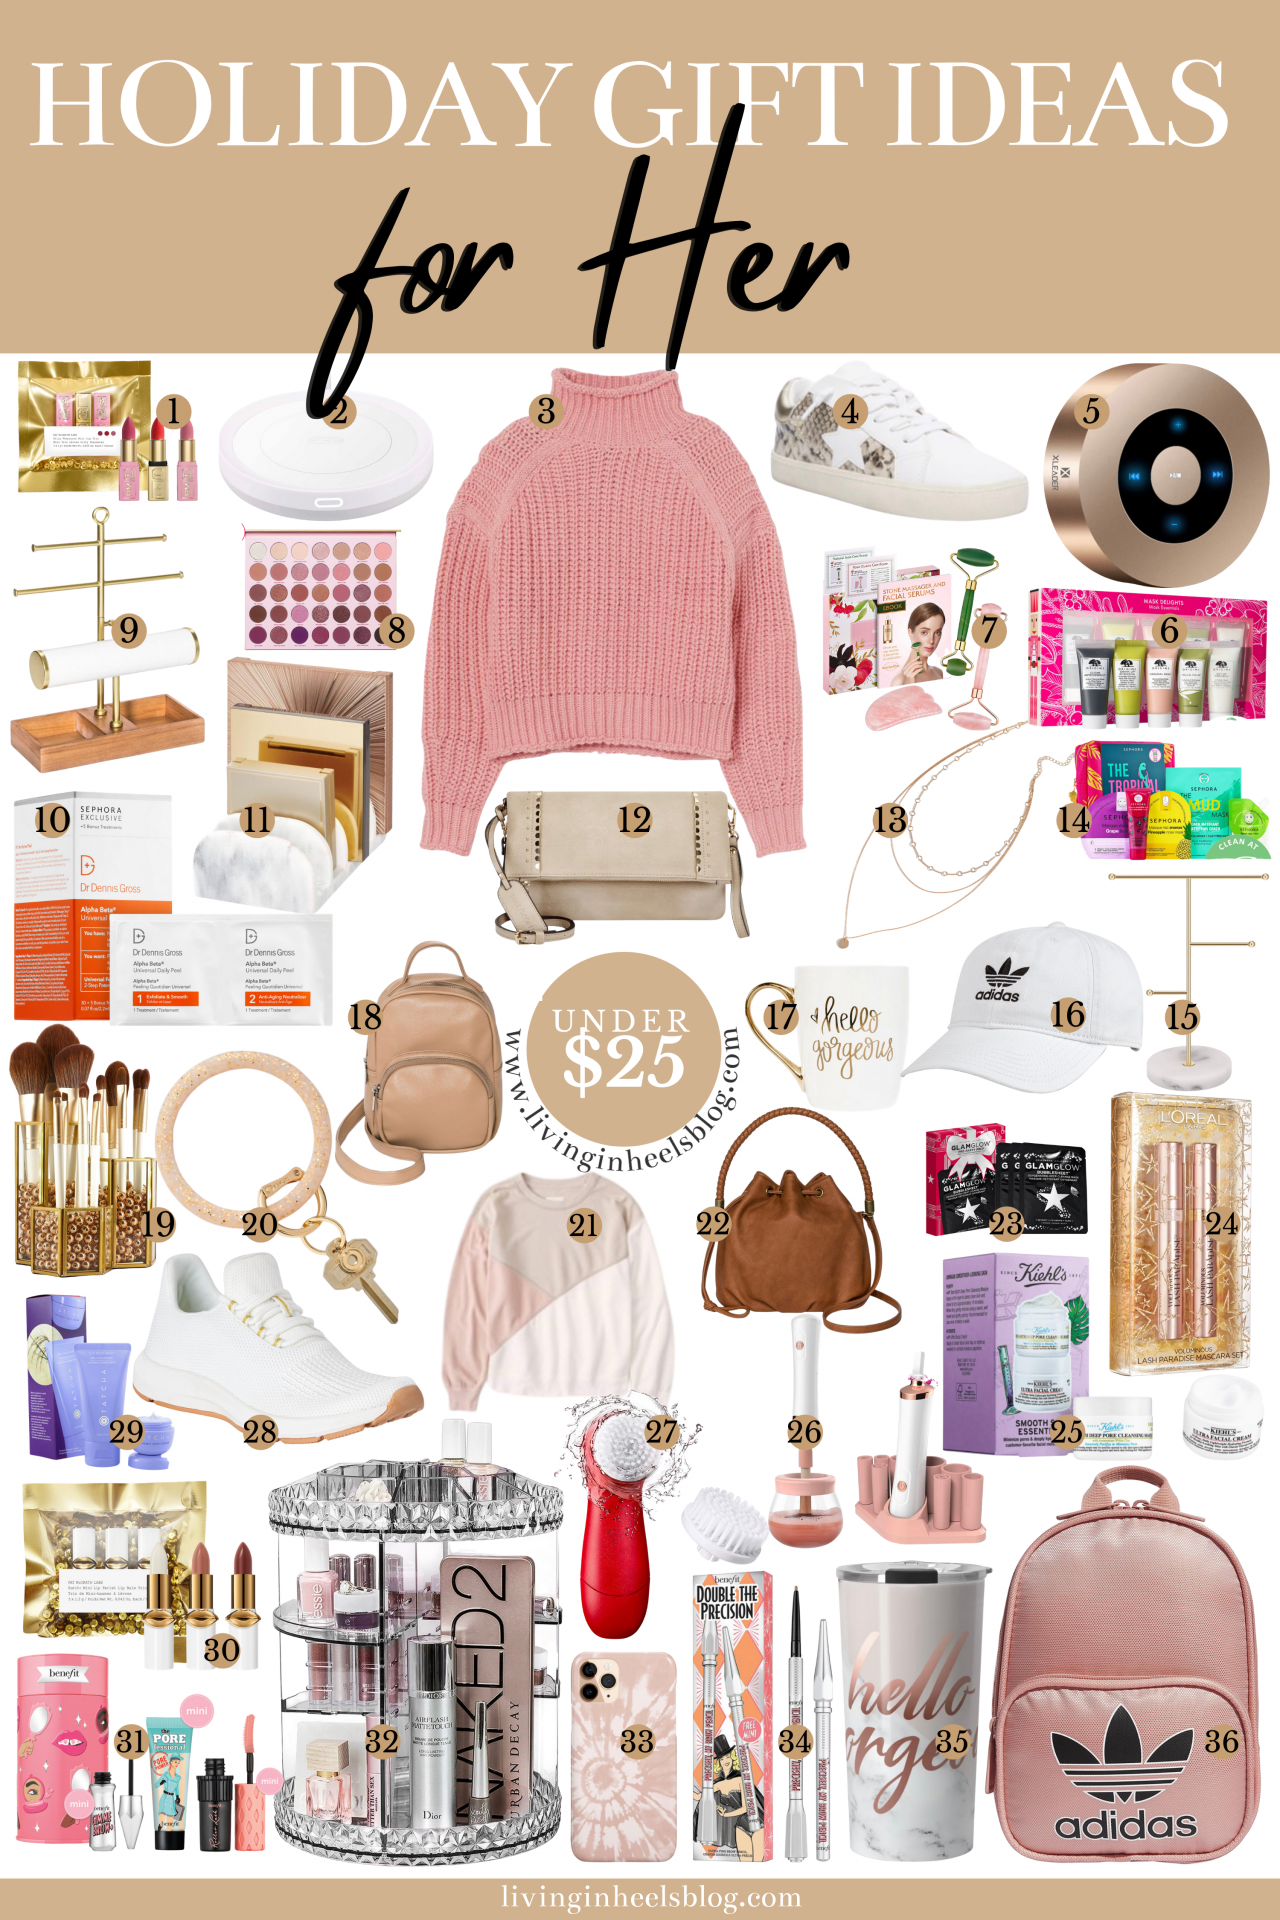 Holiday Gift Ideas for a budget under $100. Gifts for her: wife, mom, daughter, bestie! Fashion, beauty, technology and more!